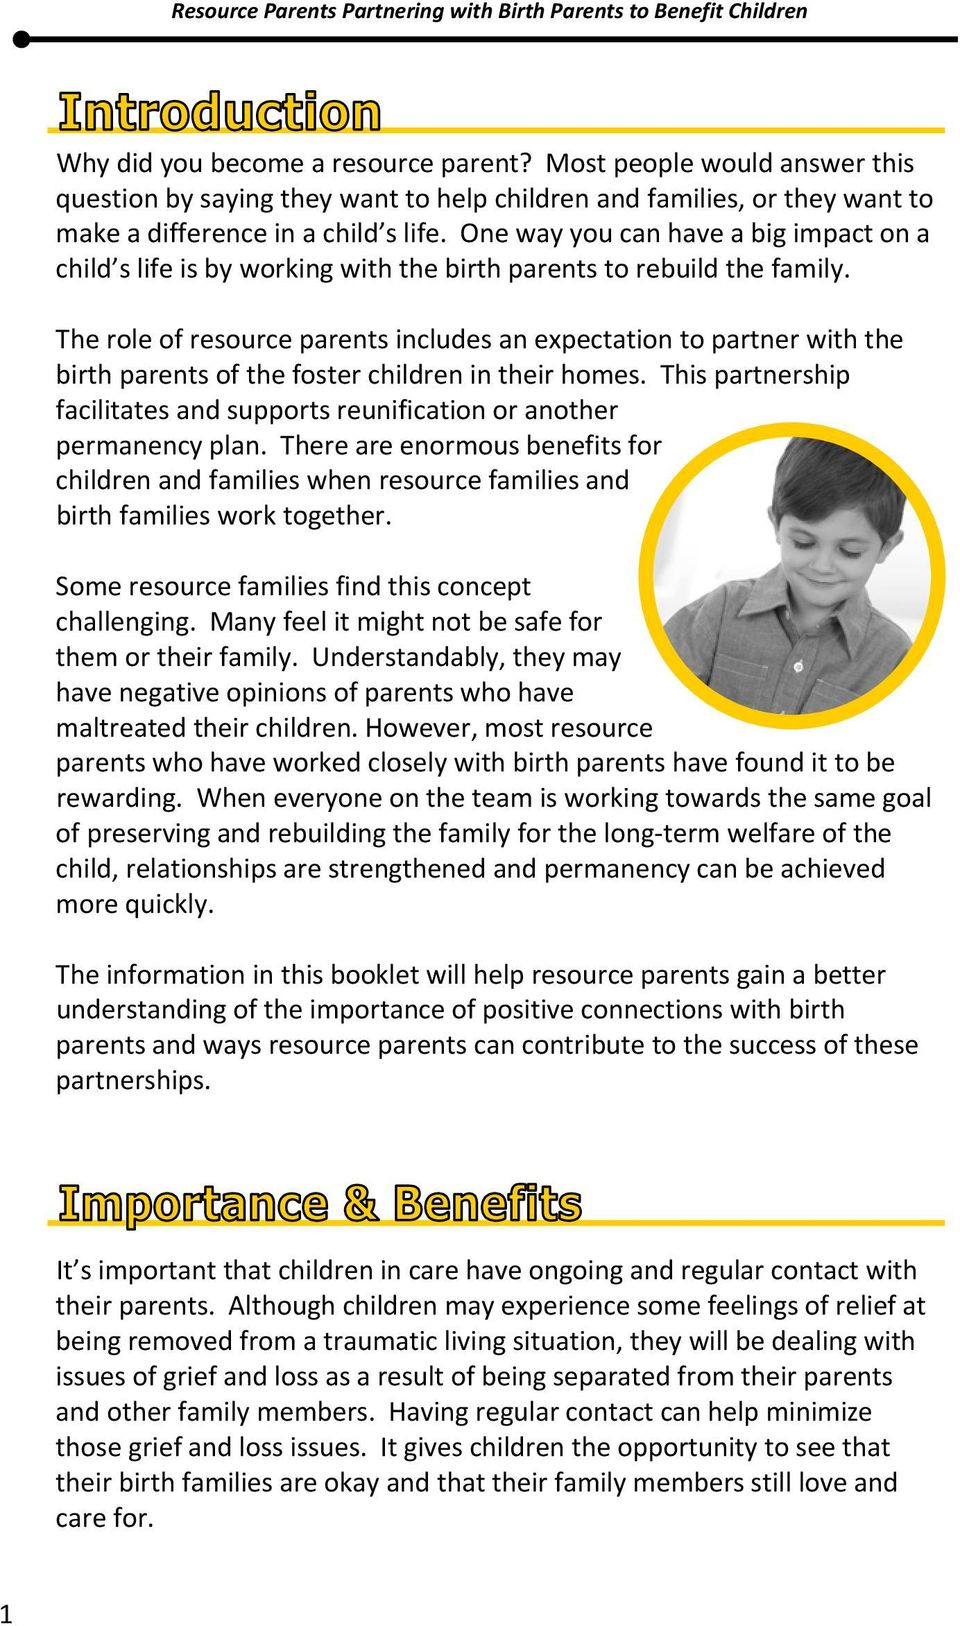 The role of resource parents includes an expectation to partner with the birth parents of the foster children in their homes.